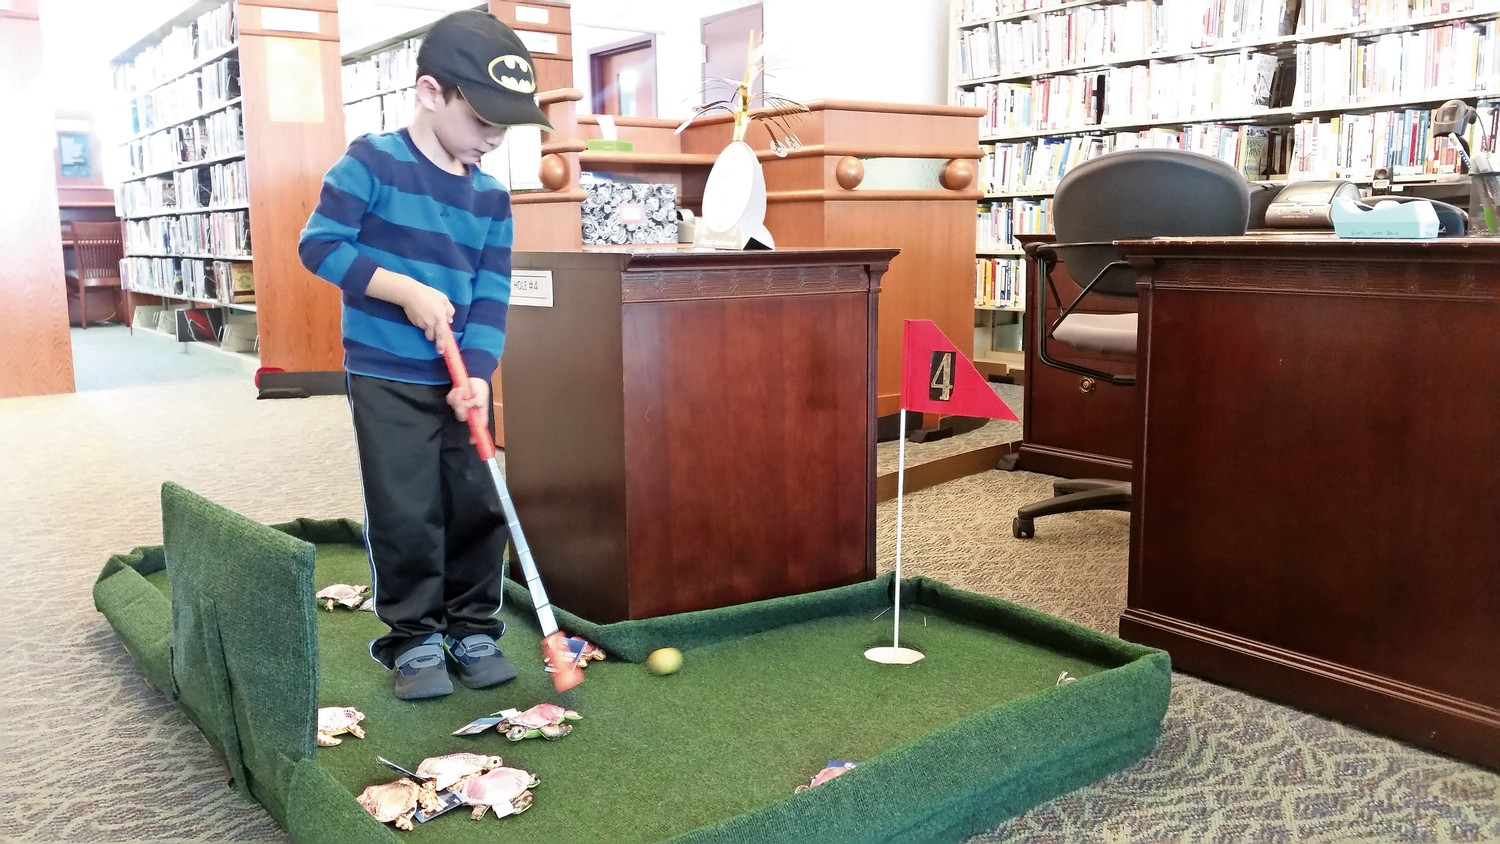 Eli Lax, 4, showed off his putting skills at the library's mini-golf course.